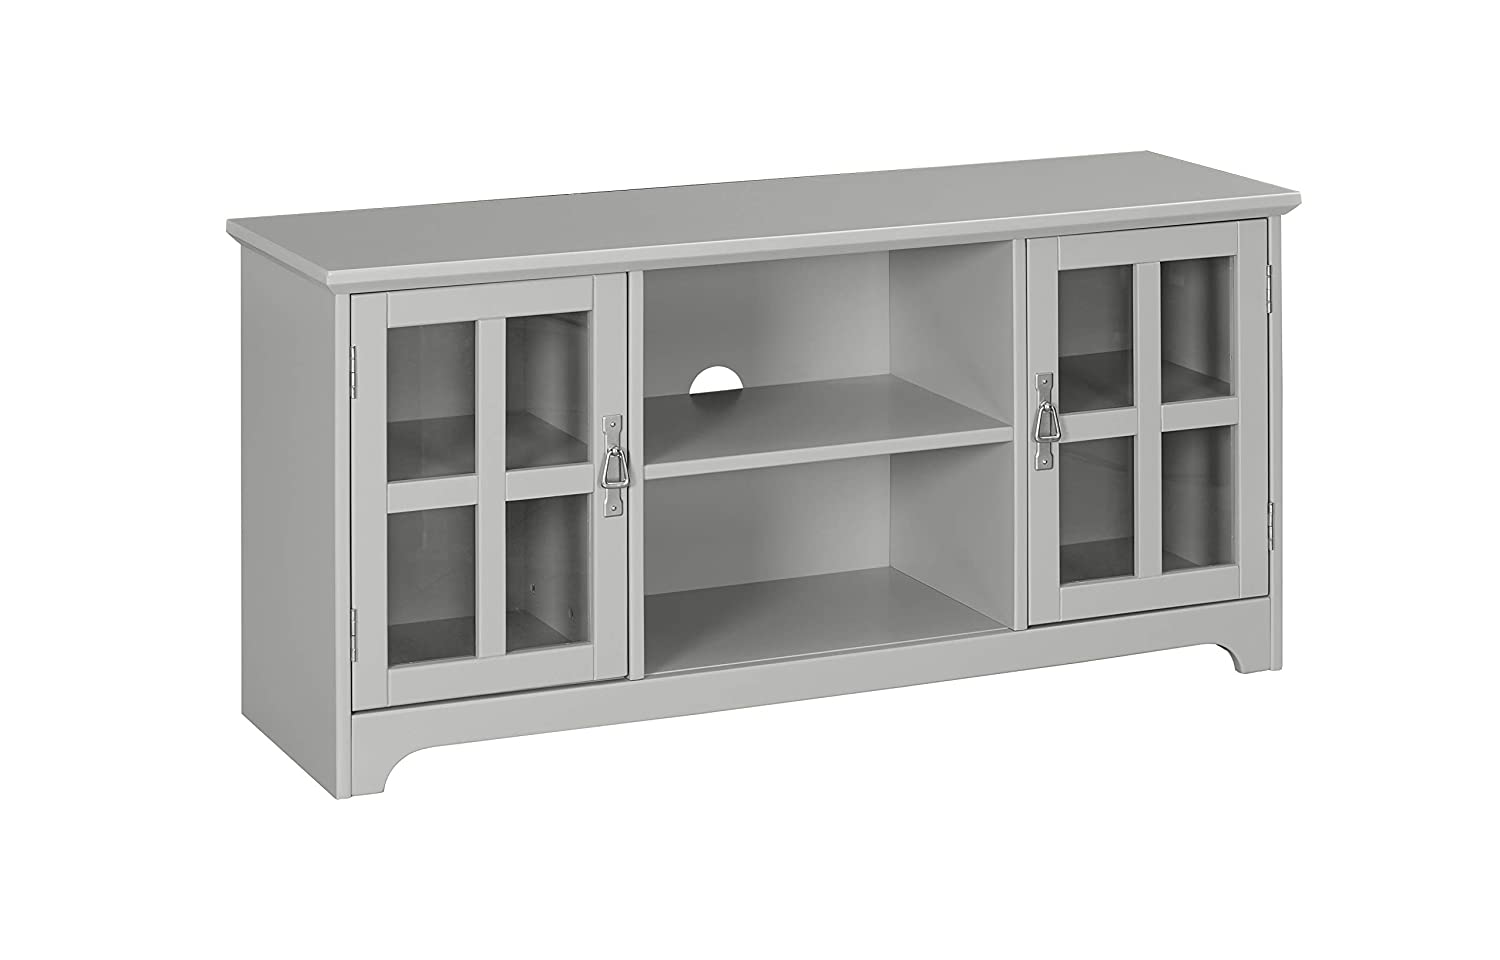 Ravenna Home Peterson Modern Glass Cabinet Storage TV Media Entertainment Console Stand, 46 W, Grey